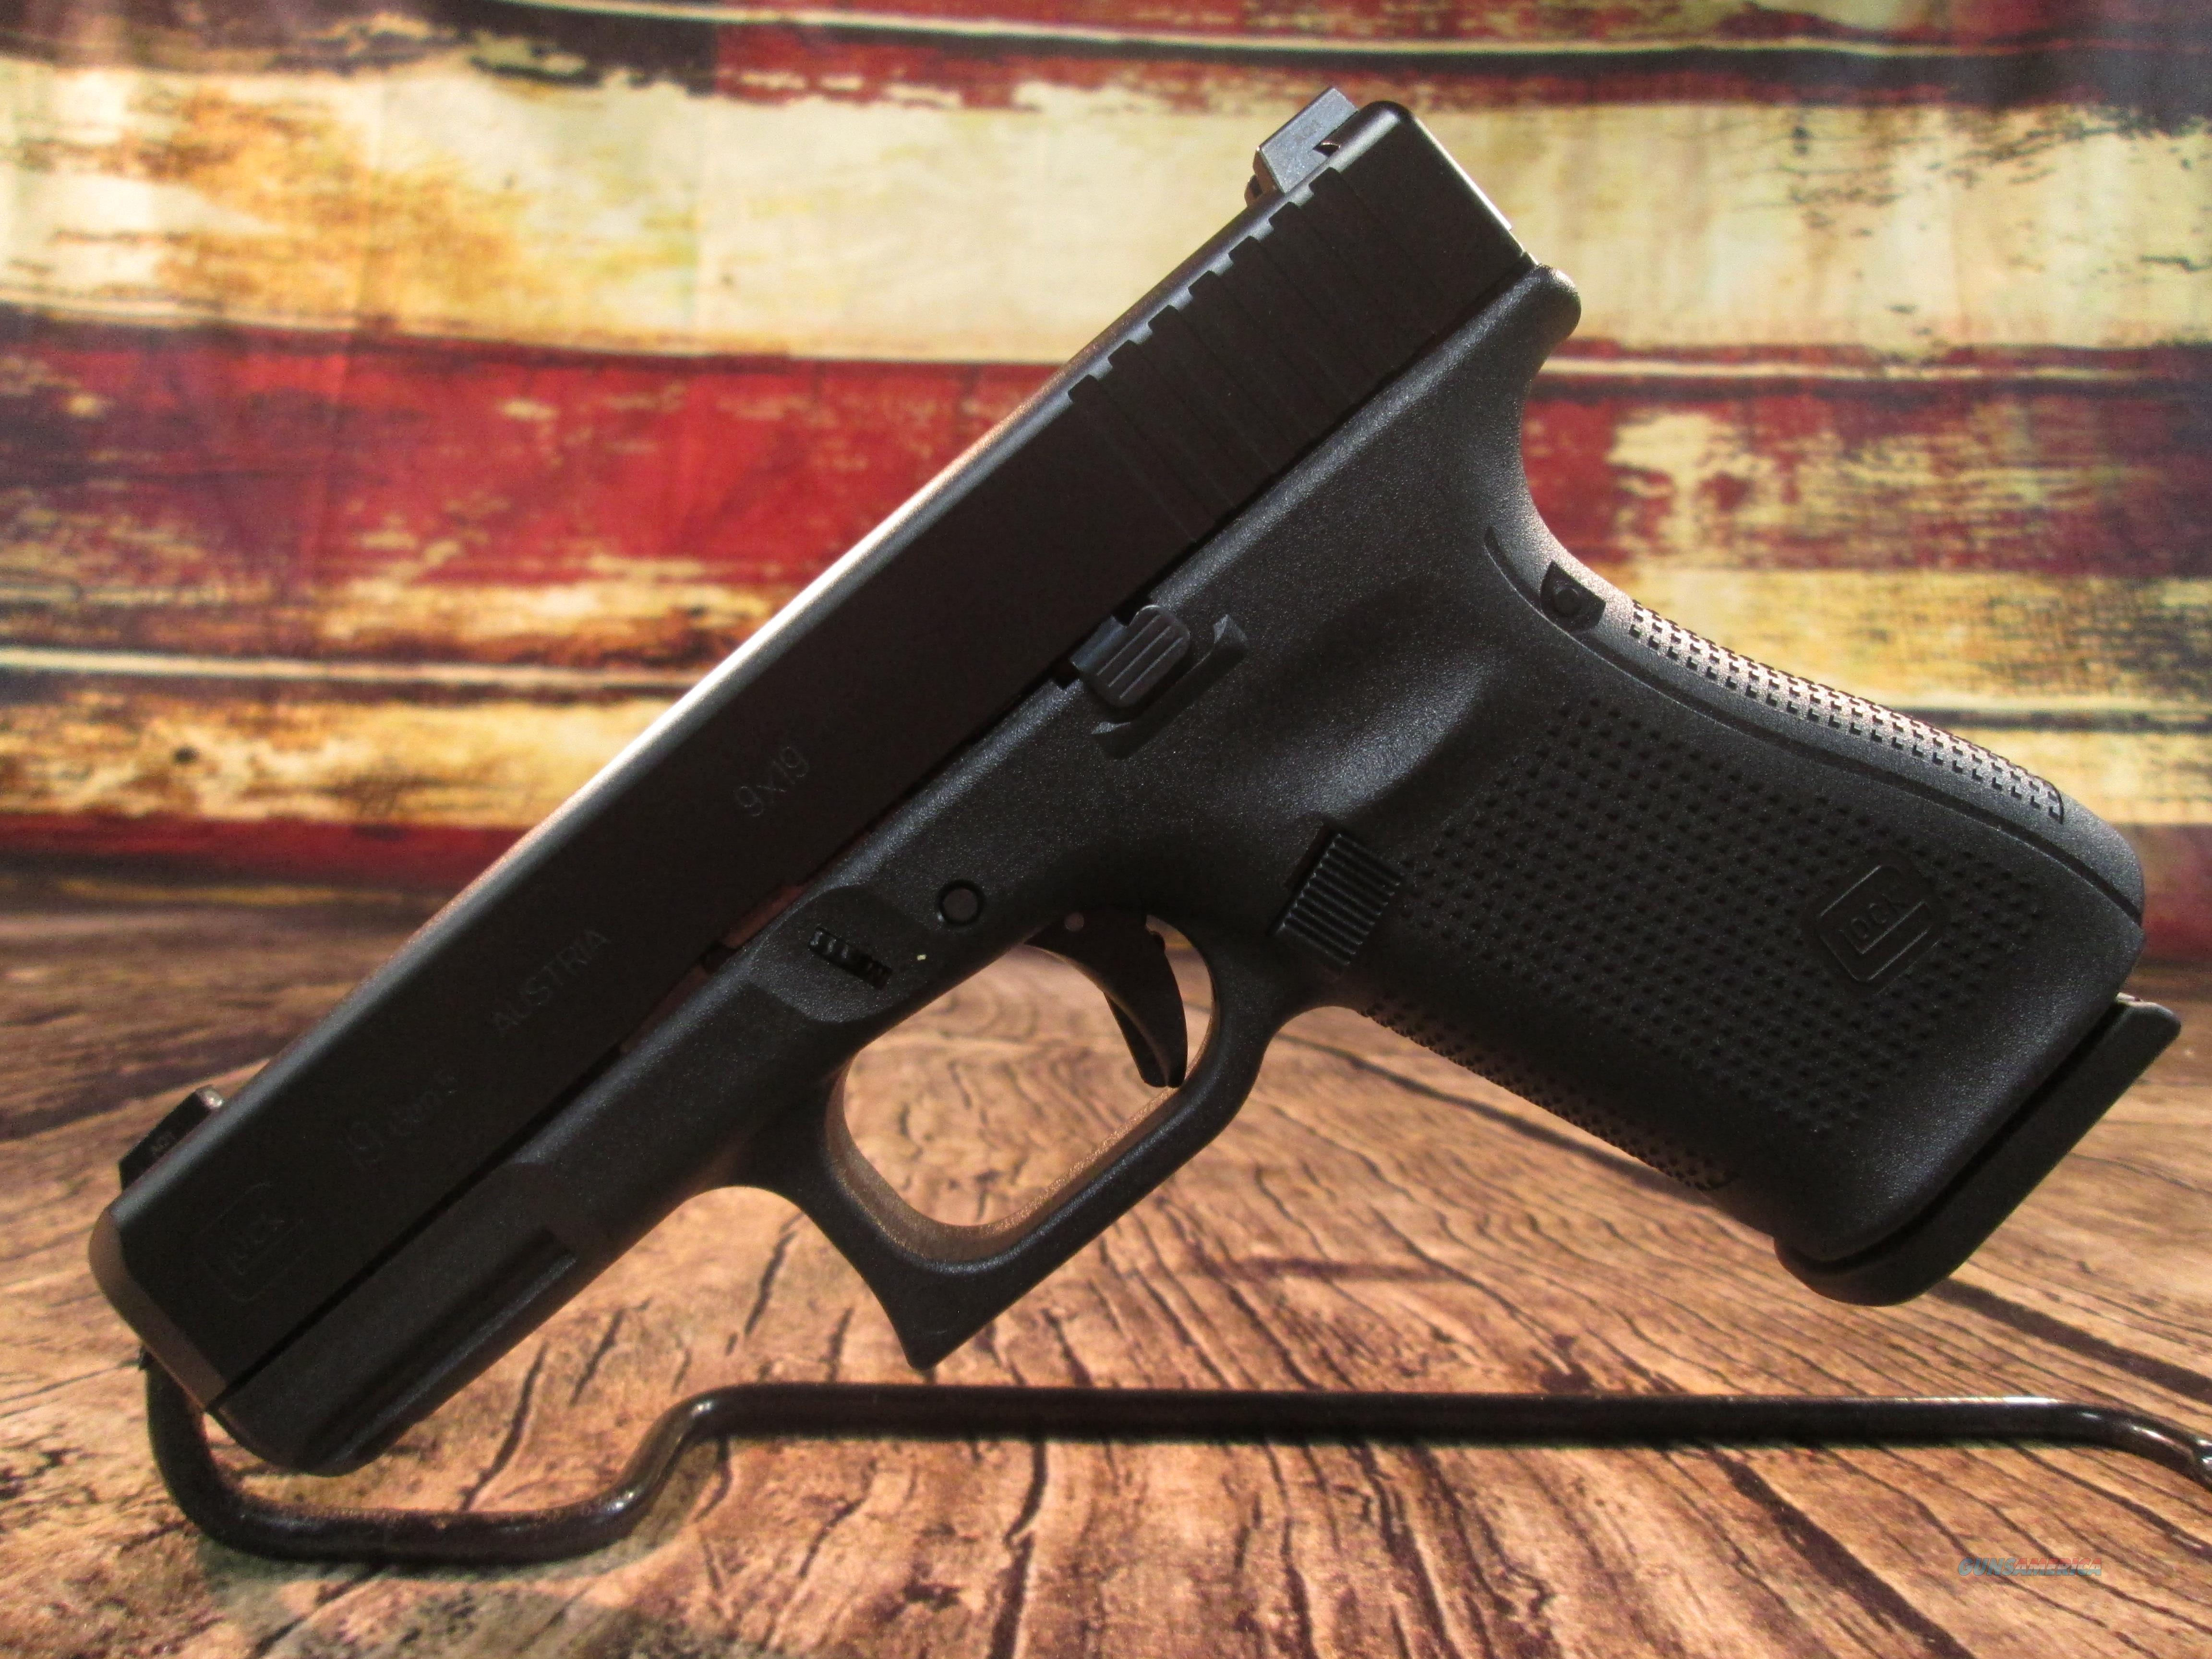 Glock Model 19 Gen 5 W/ Night Sights .9mm New (PA1950703)  Guns > Pistols > Glock Pistols > 19